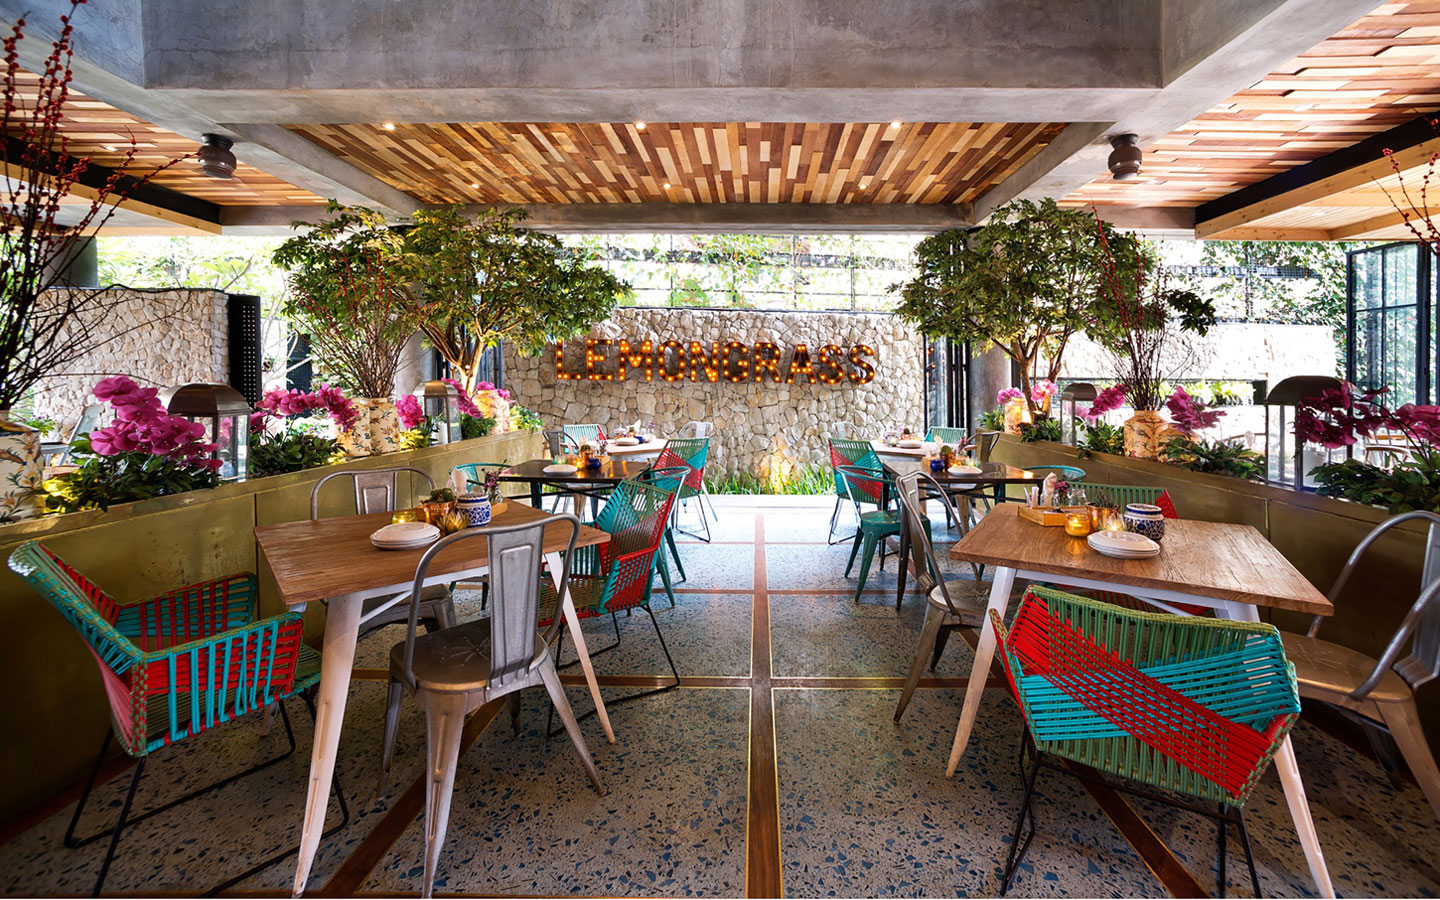 Stylish Tropical Paradise Theme of Lemongrass Restaurant Designed by Einstein & Associates-15